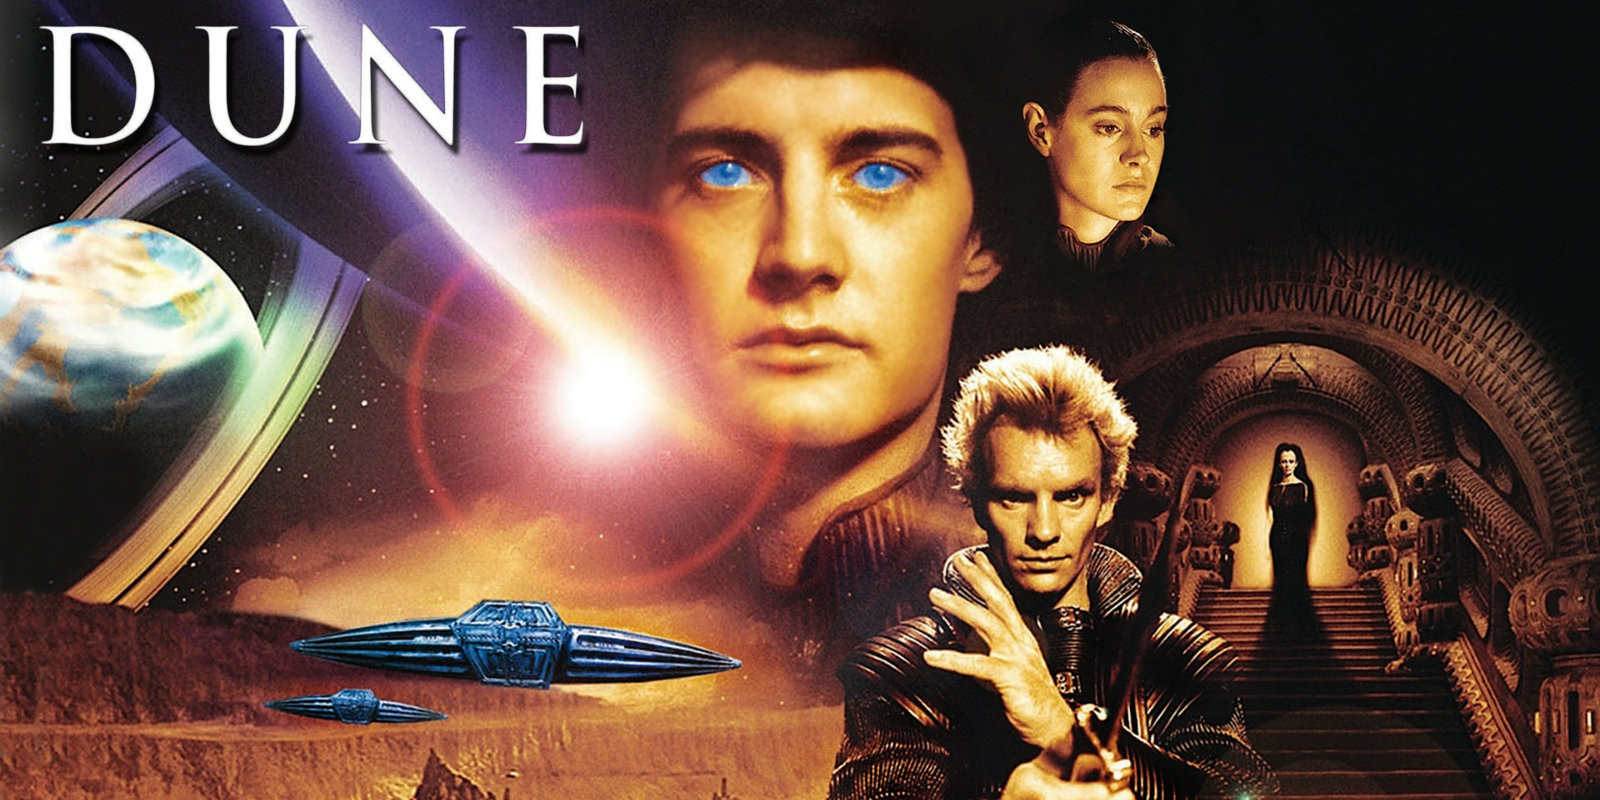 Dune (1984) movie artwork